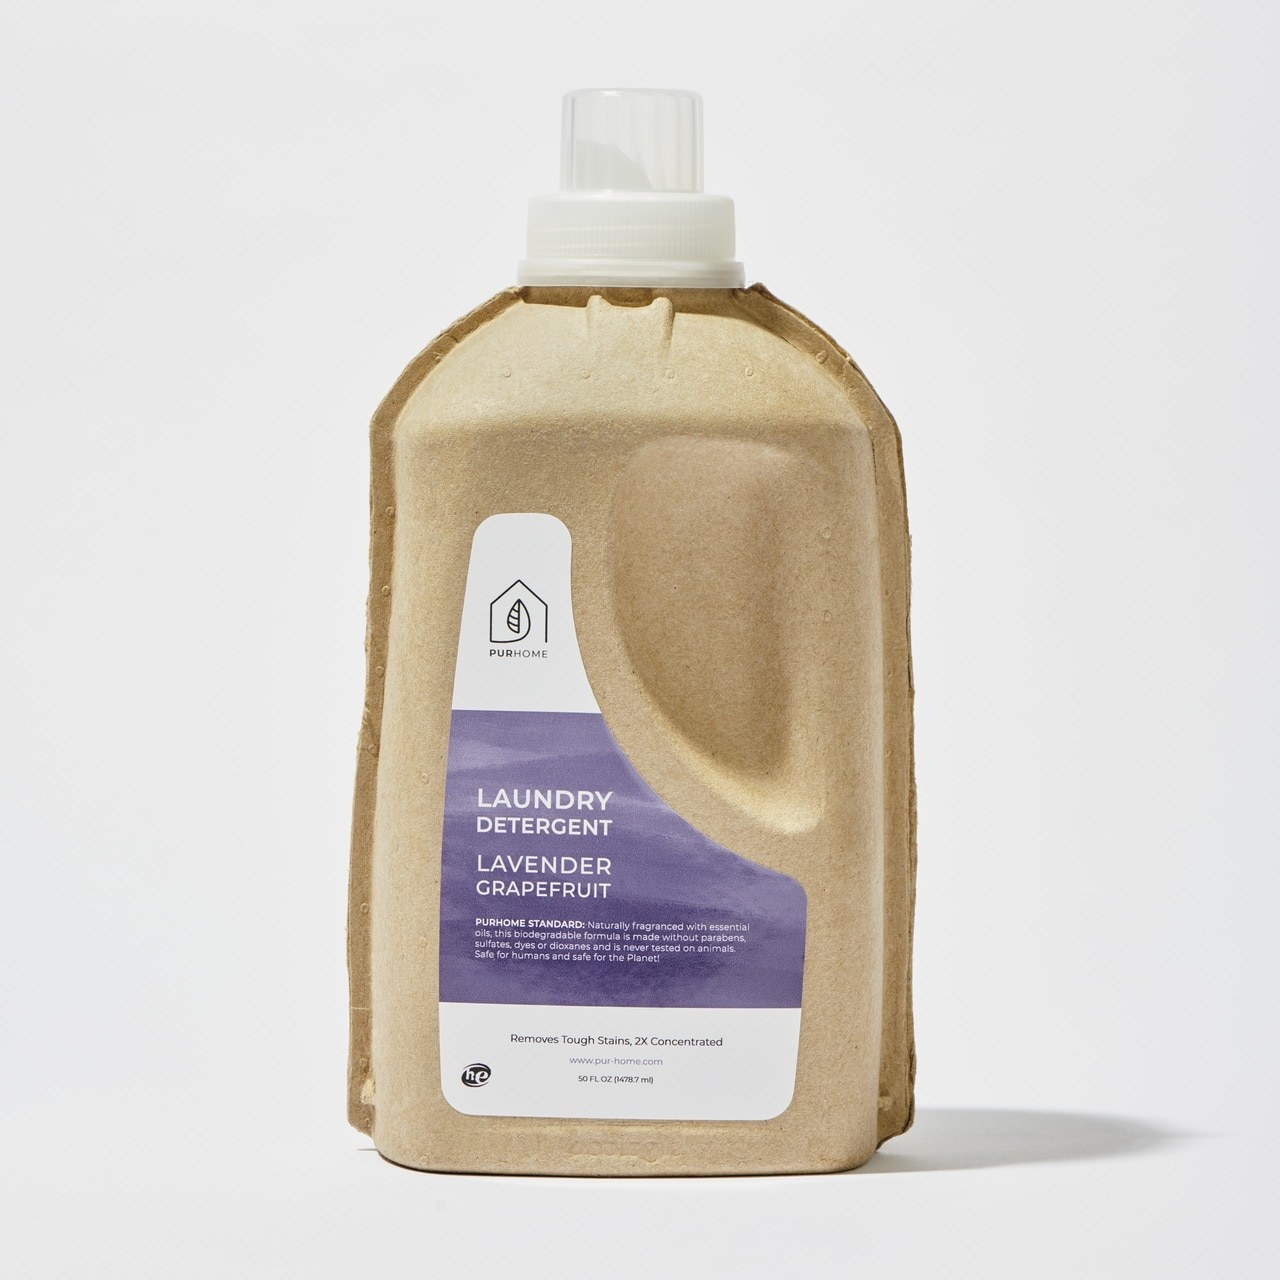 Product photo showing PurHome lavender grapefruit laundry detergent